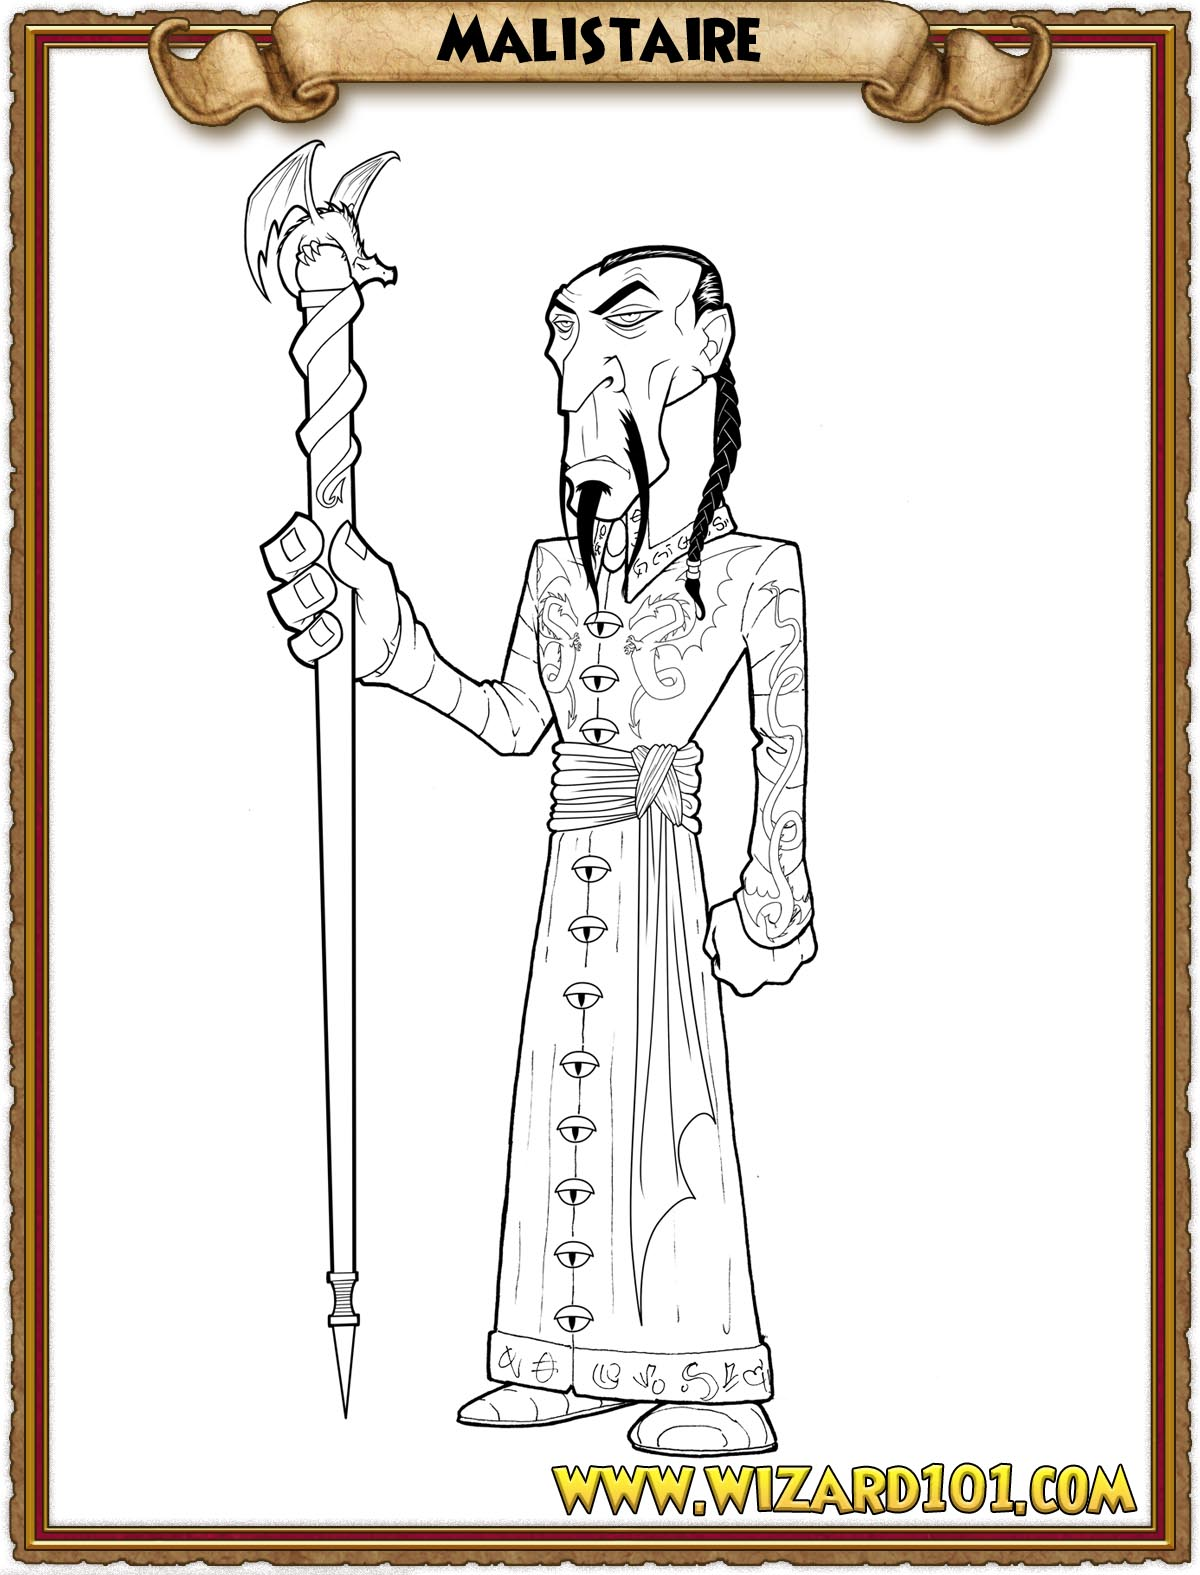 coloring pages wizard101 free online game rh wizard101 com Adult Coloring Pages Wizard of Oz Printable Coloring Pages